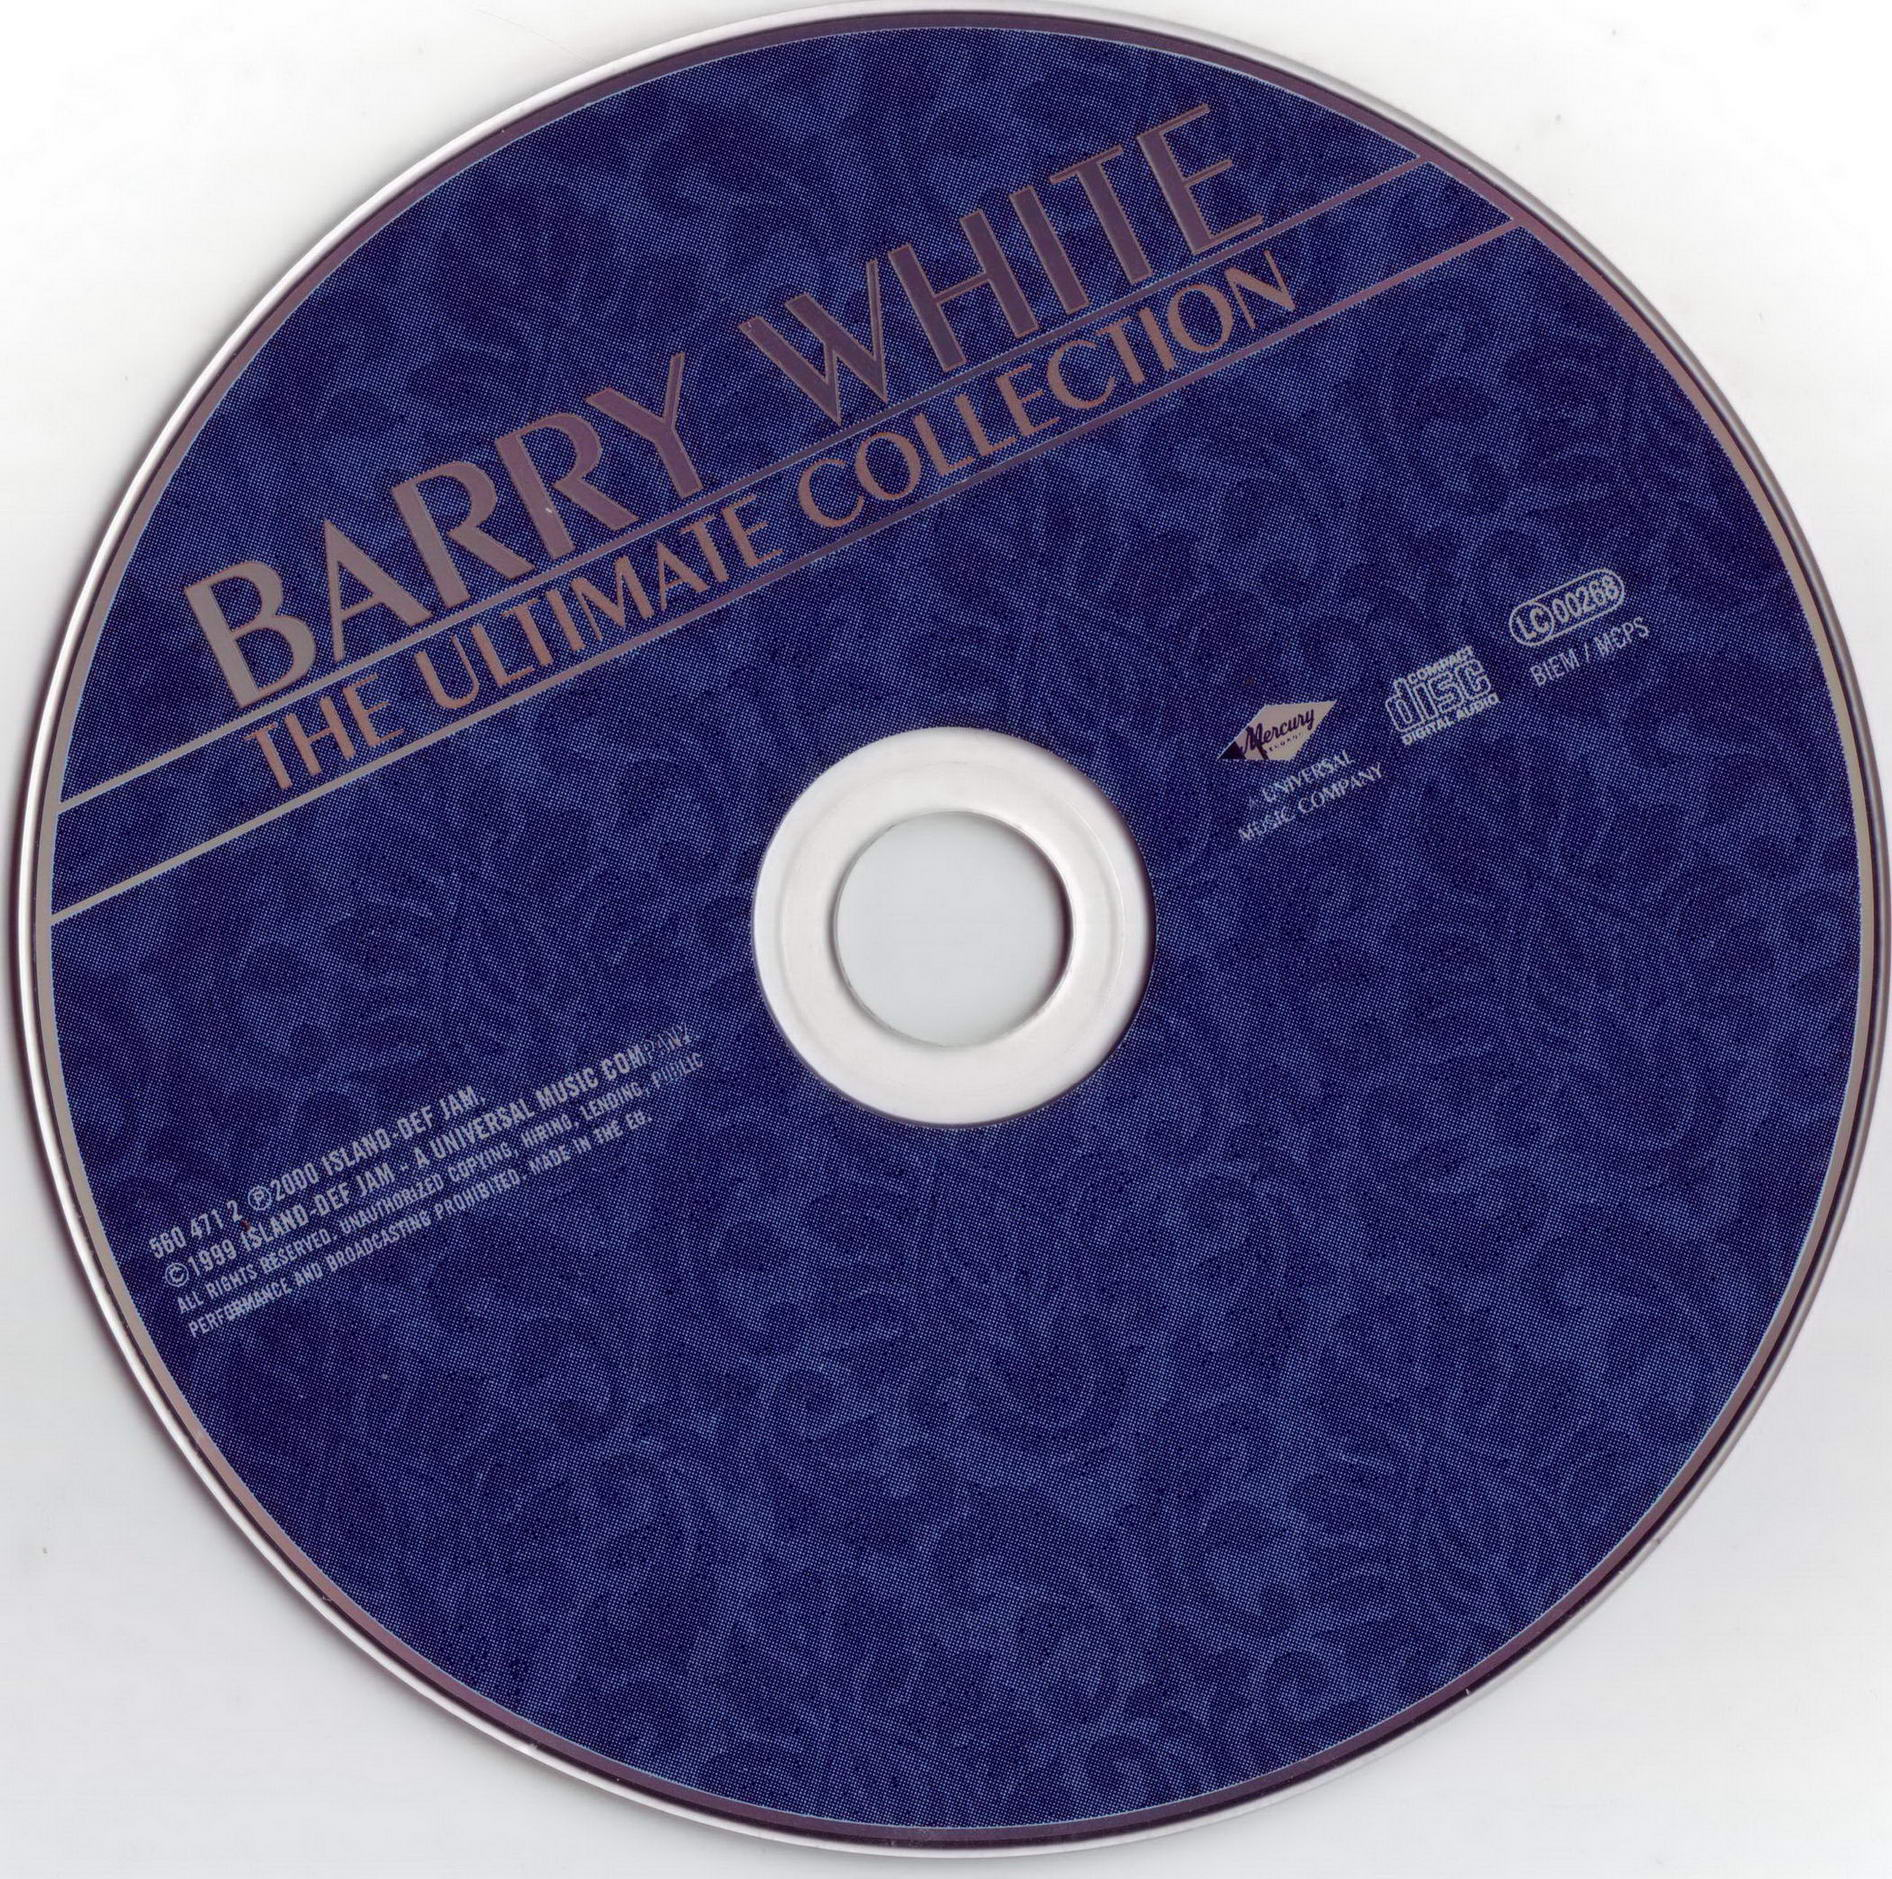 Barry White Ultimate Collection: Jaquette Audio